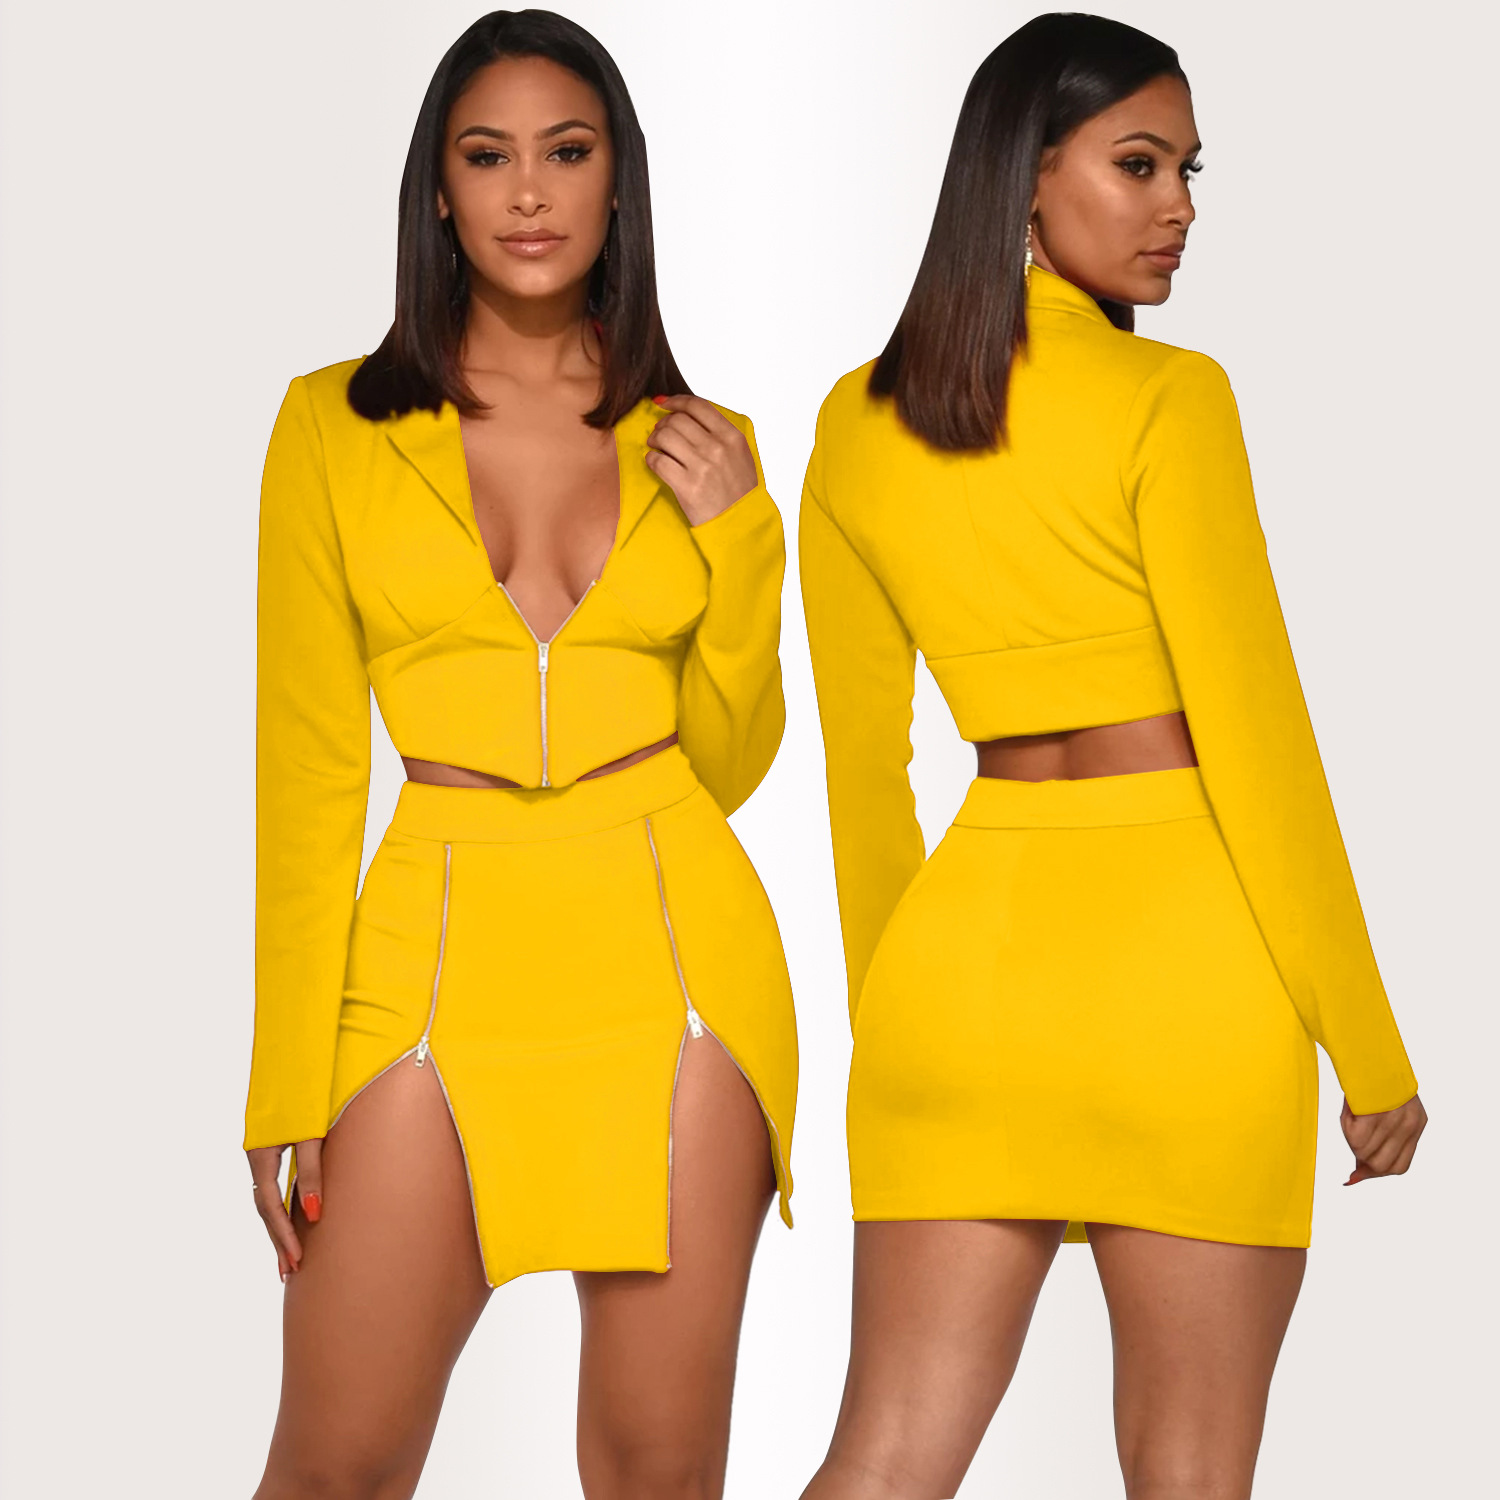 Two Piece Set Clothes Women Summer Sexy Long Sleeve Crop Top Mini Skirts Elegant Matching Sets Evening Party Suit Outfits